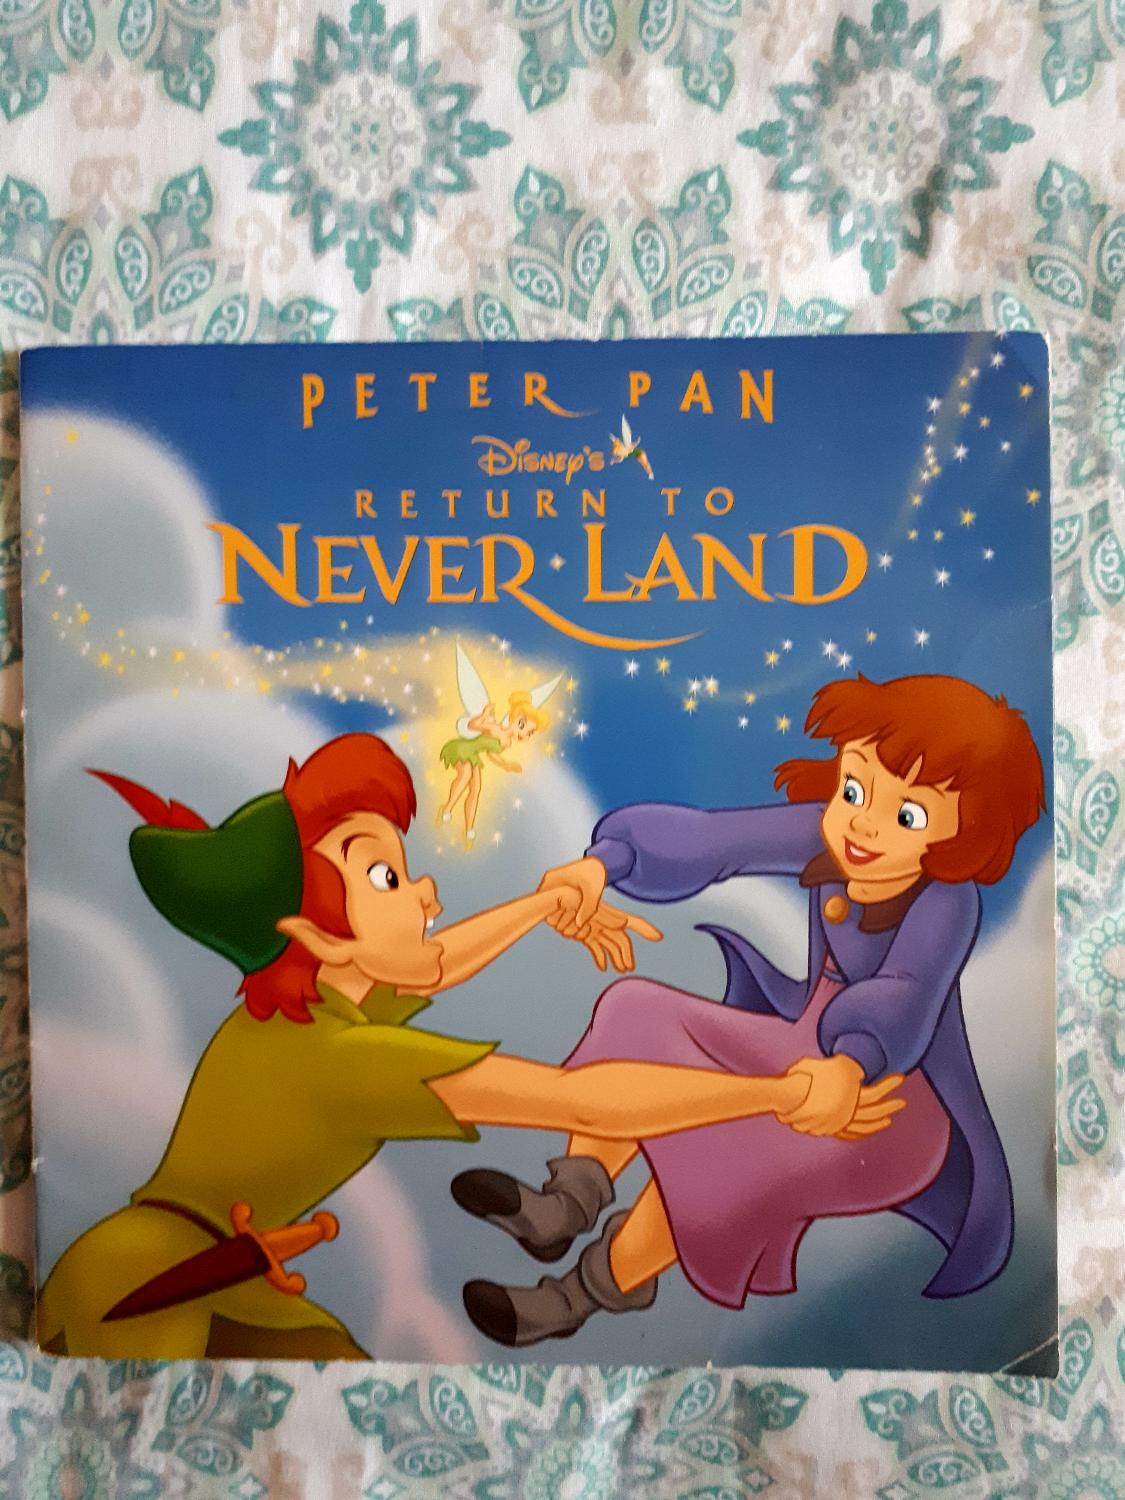 Find More Disney S Peter Pan Book For Sale At Up To 90